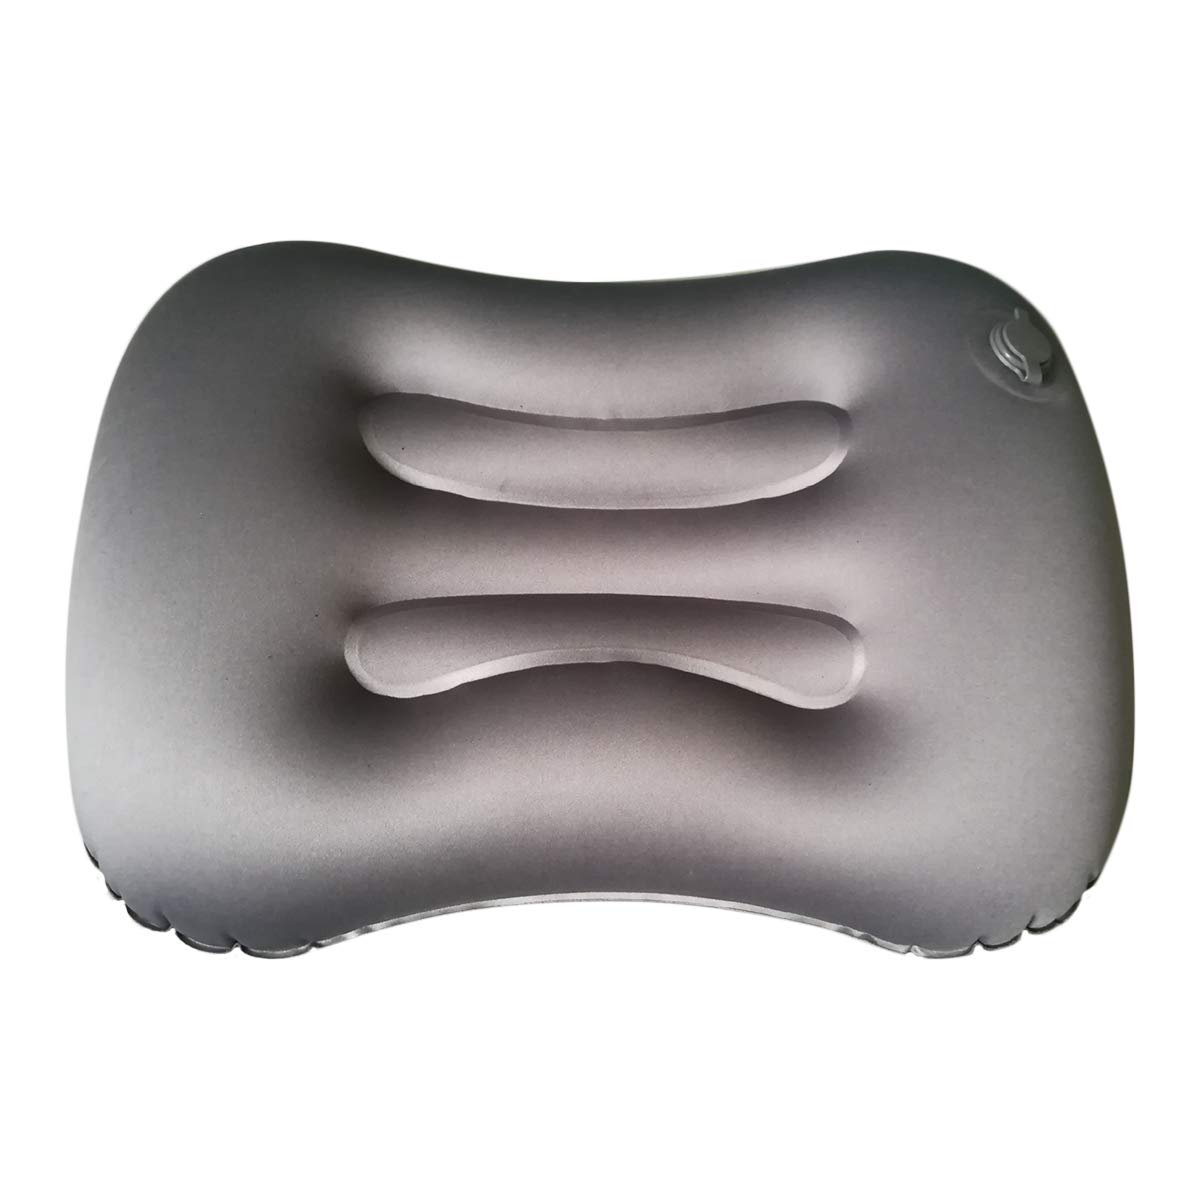 Flytool Camping Pillow Travel Inflatable Lumbar Support Backpacking Hiking Compact Pillow